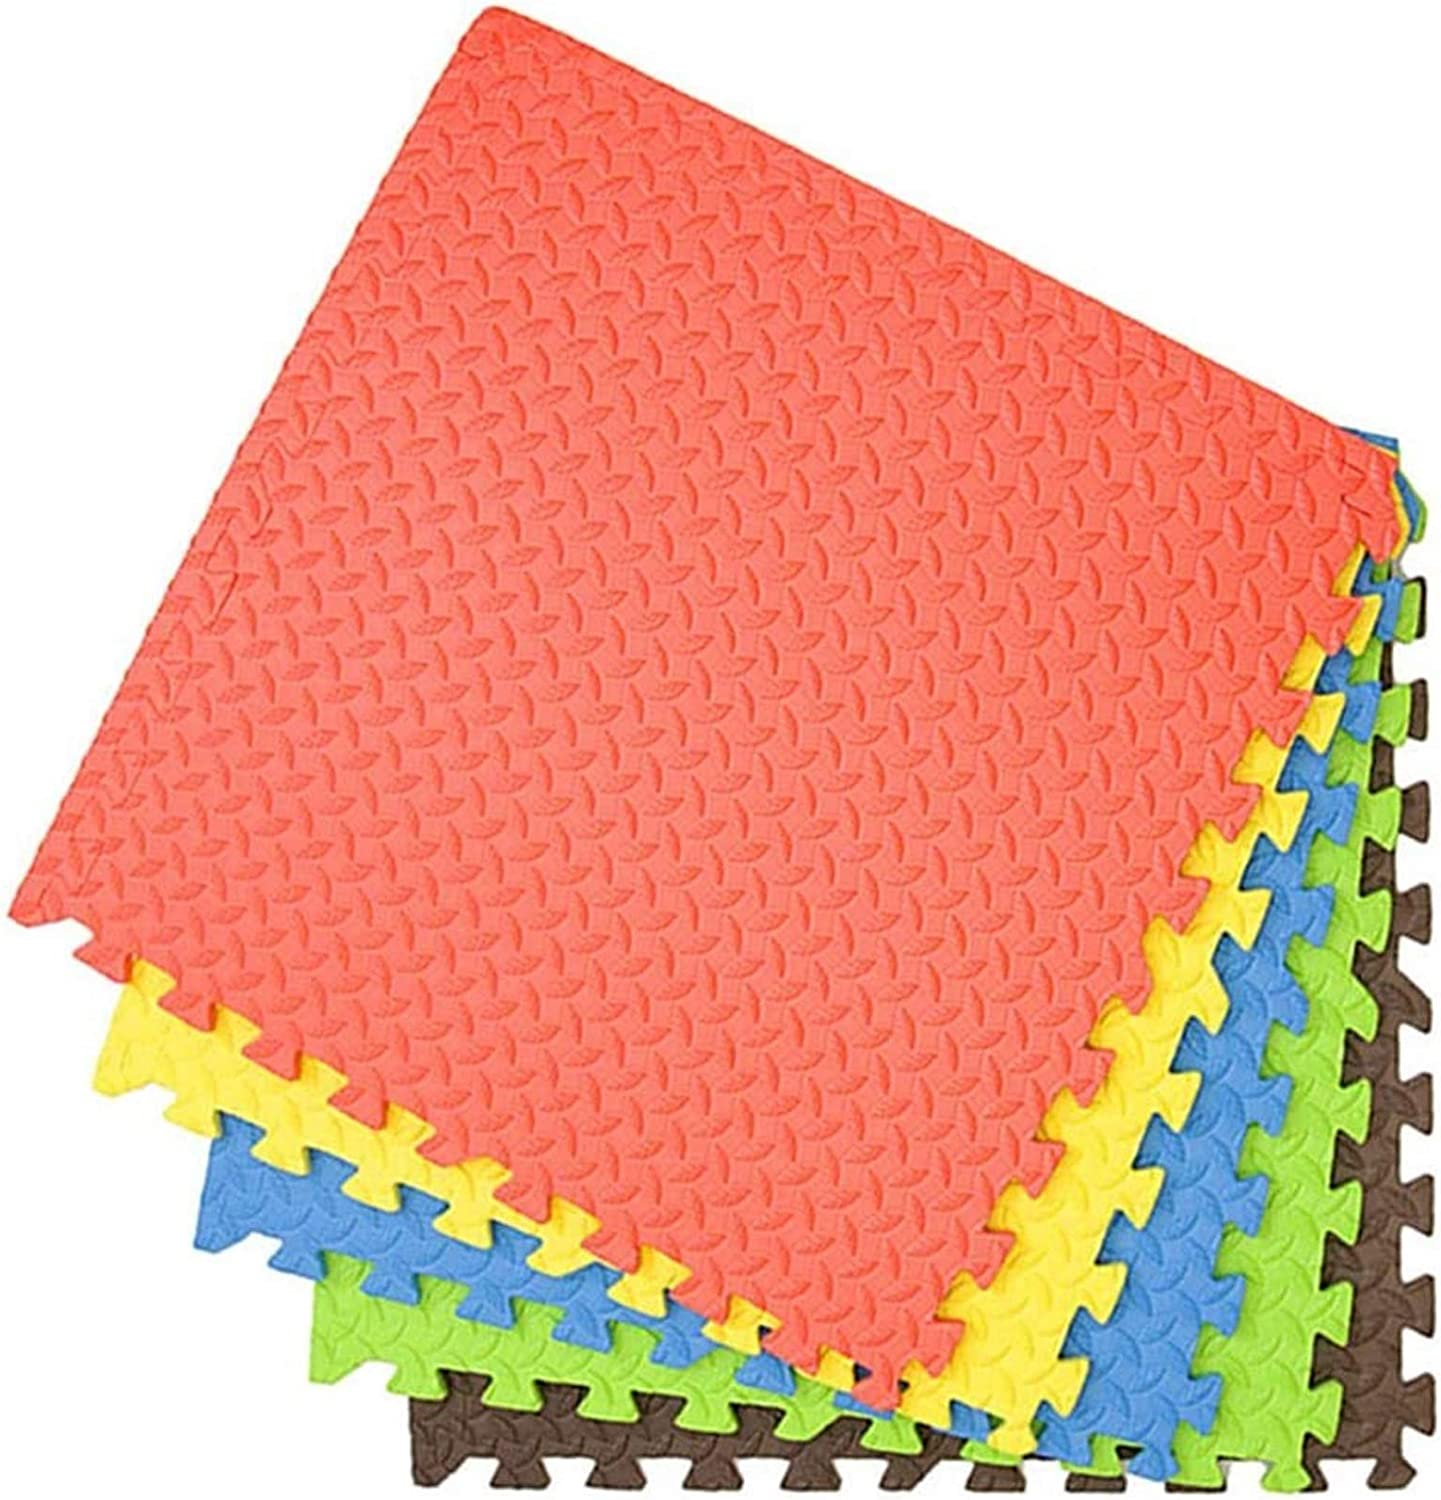 GYJWXM Puzzle Play Mats Max 76% OFF Versatile EVA Gym New product type Flooring